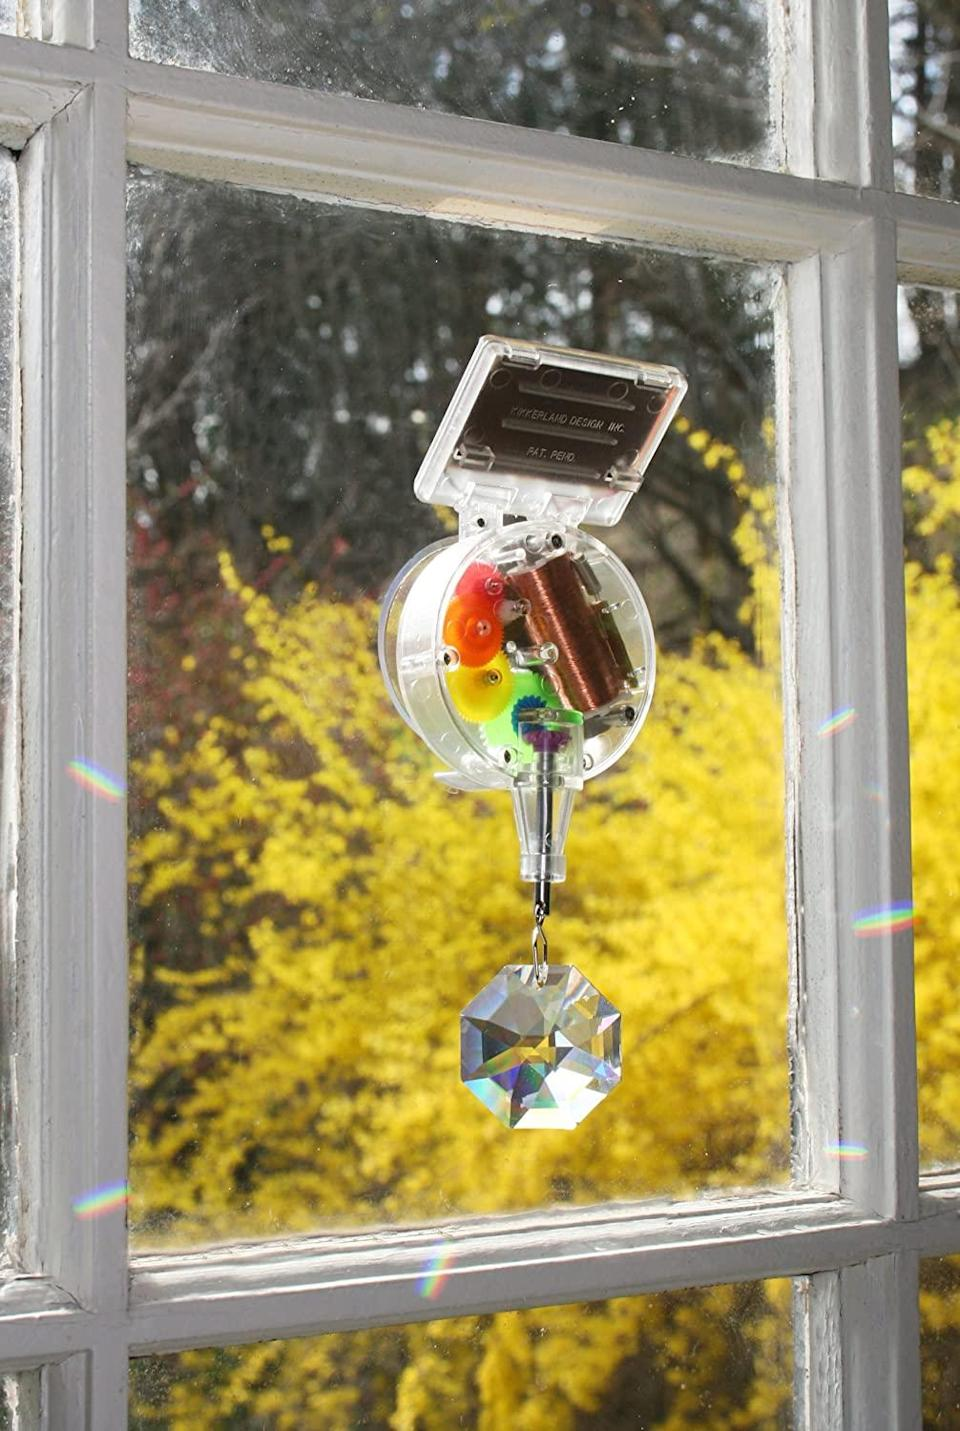 """<h2>Kikkerland Solar-Powered Rainbow Maker<br></h2><br>Help a friend make the most of their indoor space — and the precious winter sun — with this dazzling, rainbow-ready window accent.<br><br><strong>Kikkerland</strong> Solar-Powered Rainbow Maker, $, available at <a href=""""https://www.amazon.com/Kikkerland-1588-Solar-Powered-Rainbow-Maker/dp/B000068UG6"""" rel=""""nofollow noopener"""" target=""""_blank"""" data-ylk=""""slk:Amazon"""" class=""""link rapid-noclick-resp"""">Amazon</a>"""